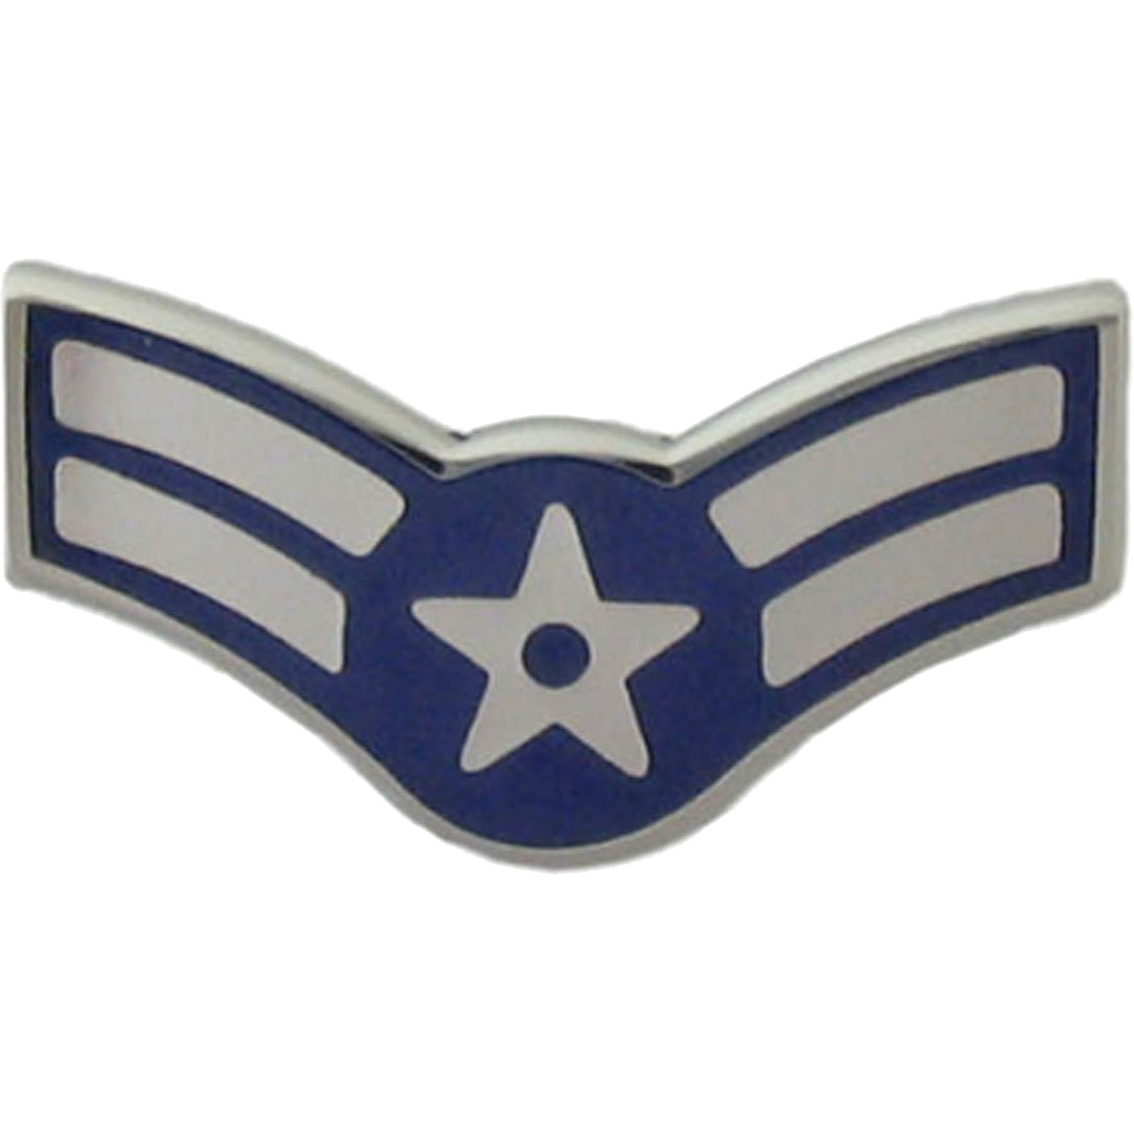 Air Force Rank A1c E-3 Metal Pin-on | Enlisted Metal Pin-on Rank